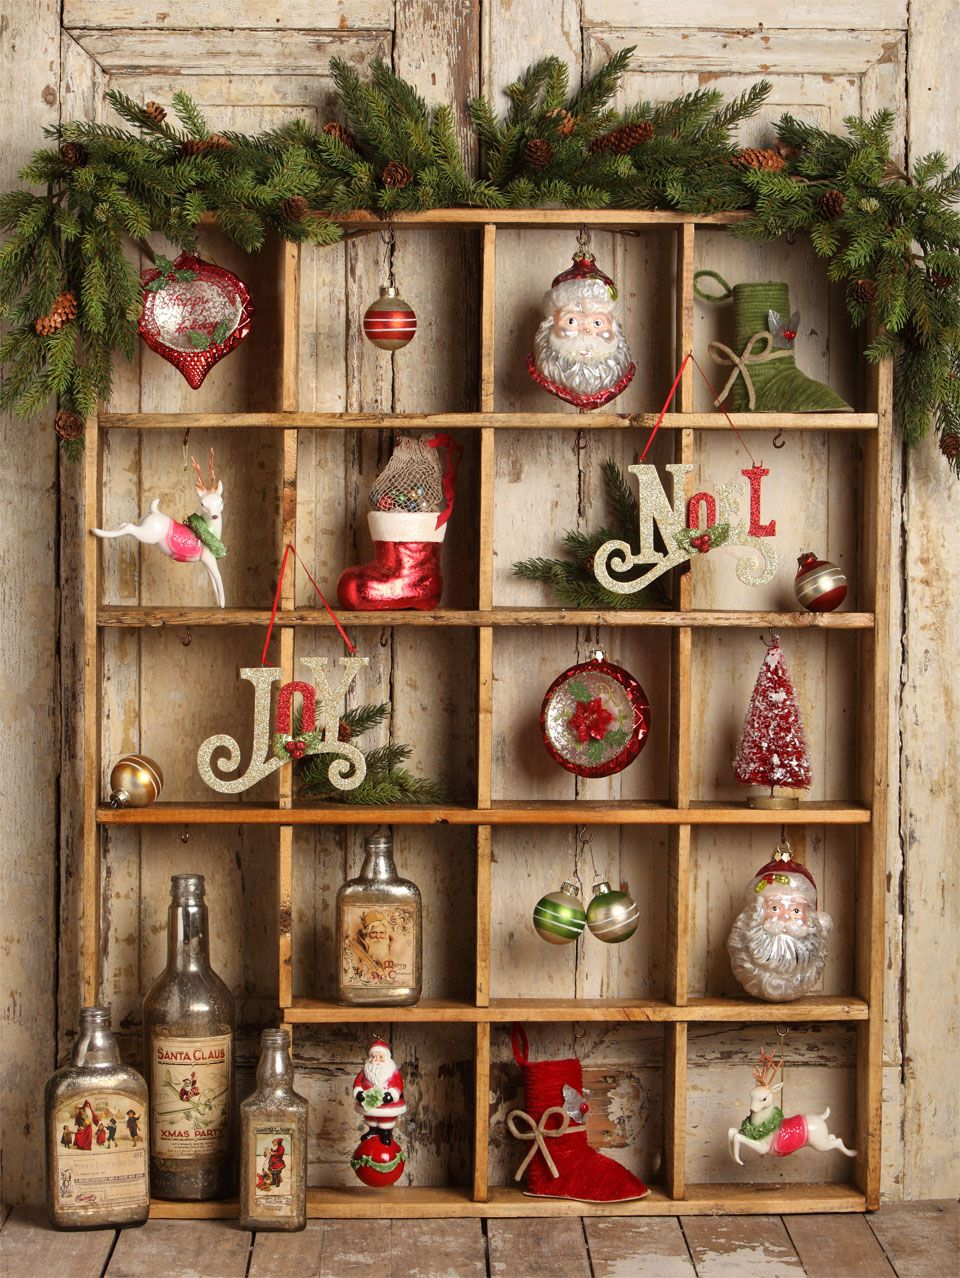 Display Your Ornaments In A Shallow Shelf With Many Small Compartments Photo From Bethany Low Diy Christmas Wall Christmas Wall Decor Diy Christmas Wall Decor